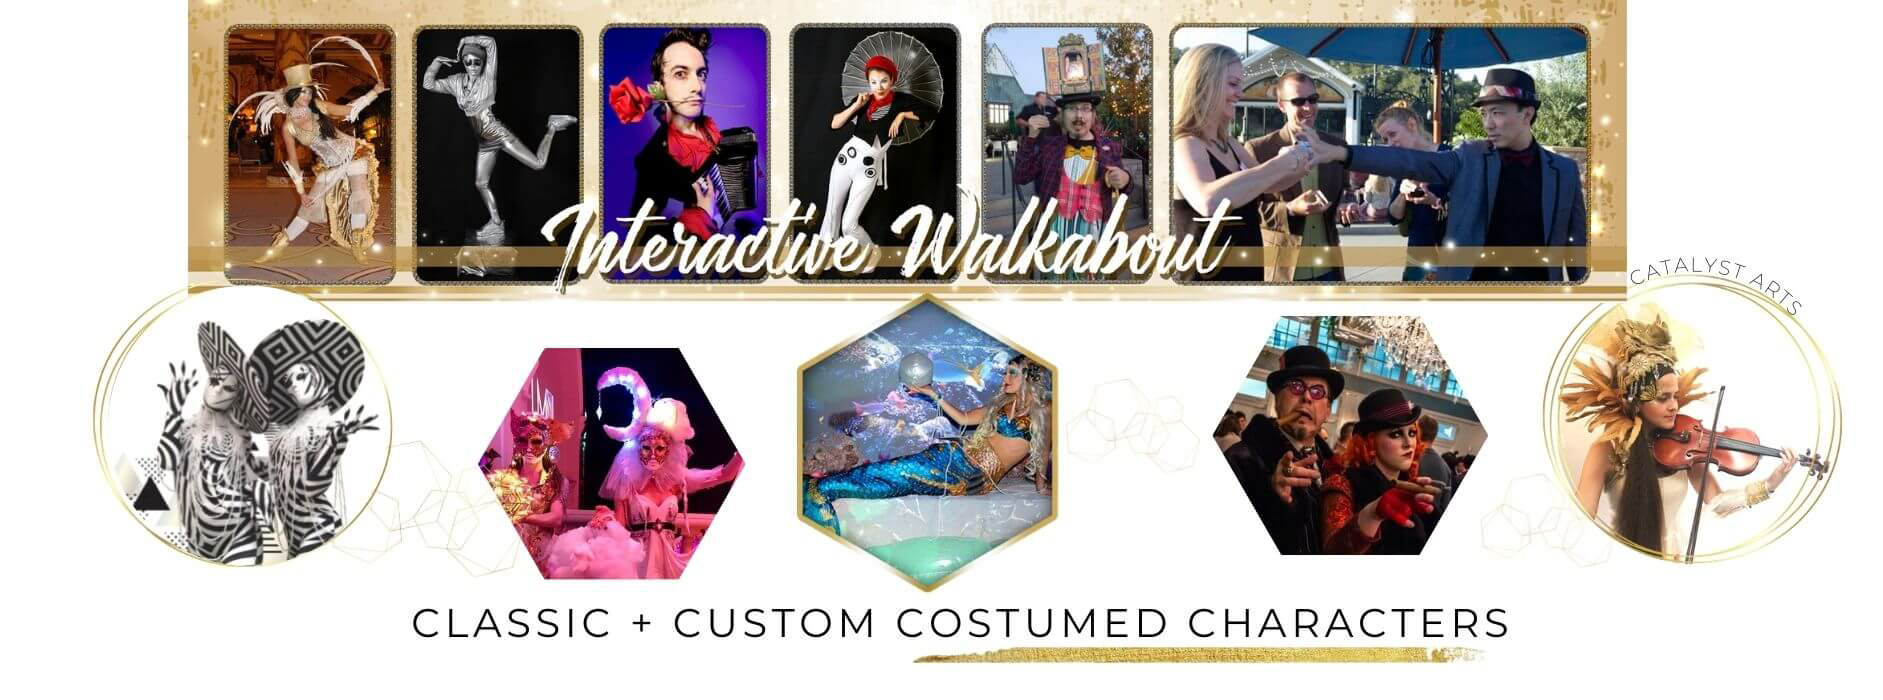 Interactive Walkabout & Costumed Characters by Catalyst Arts